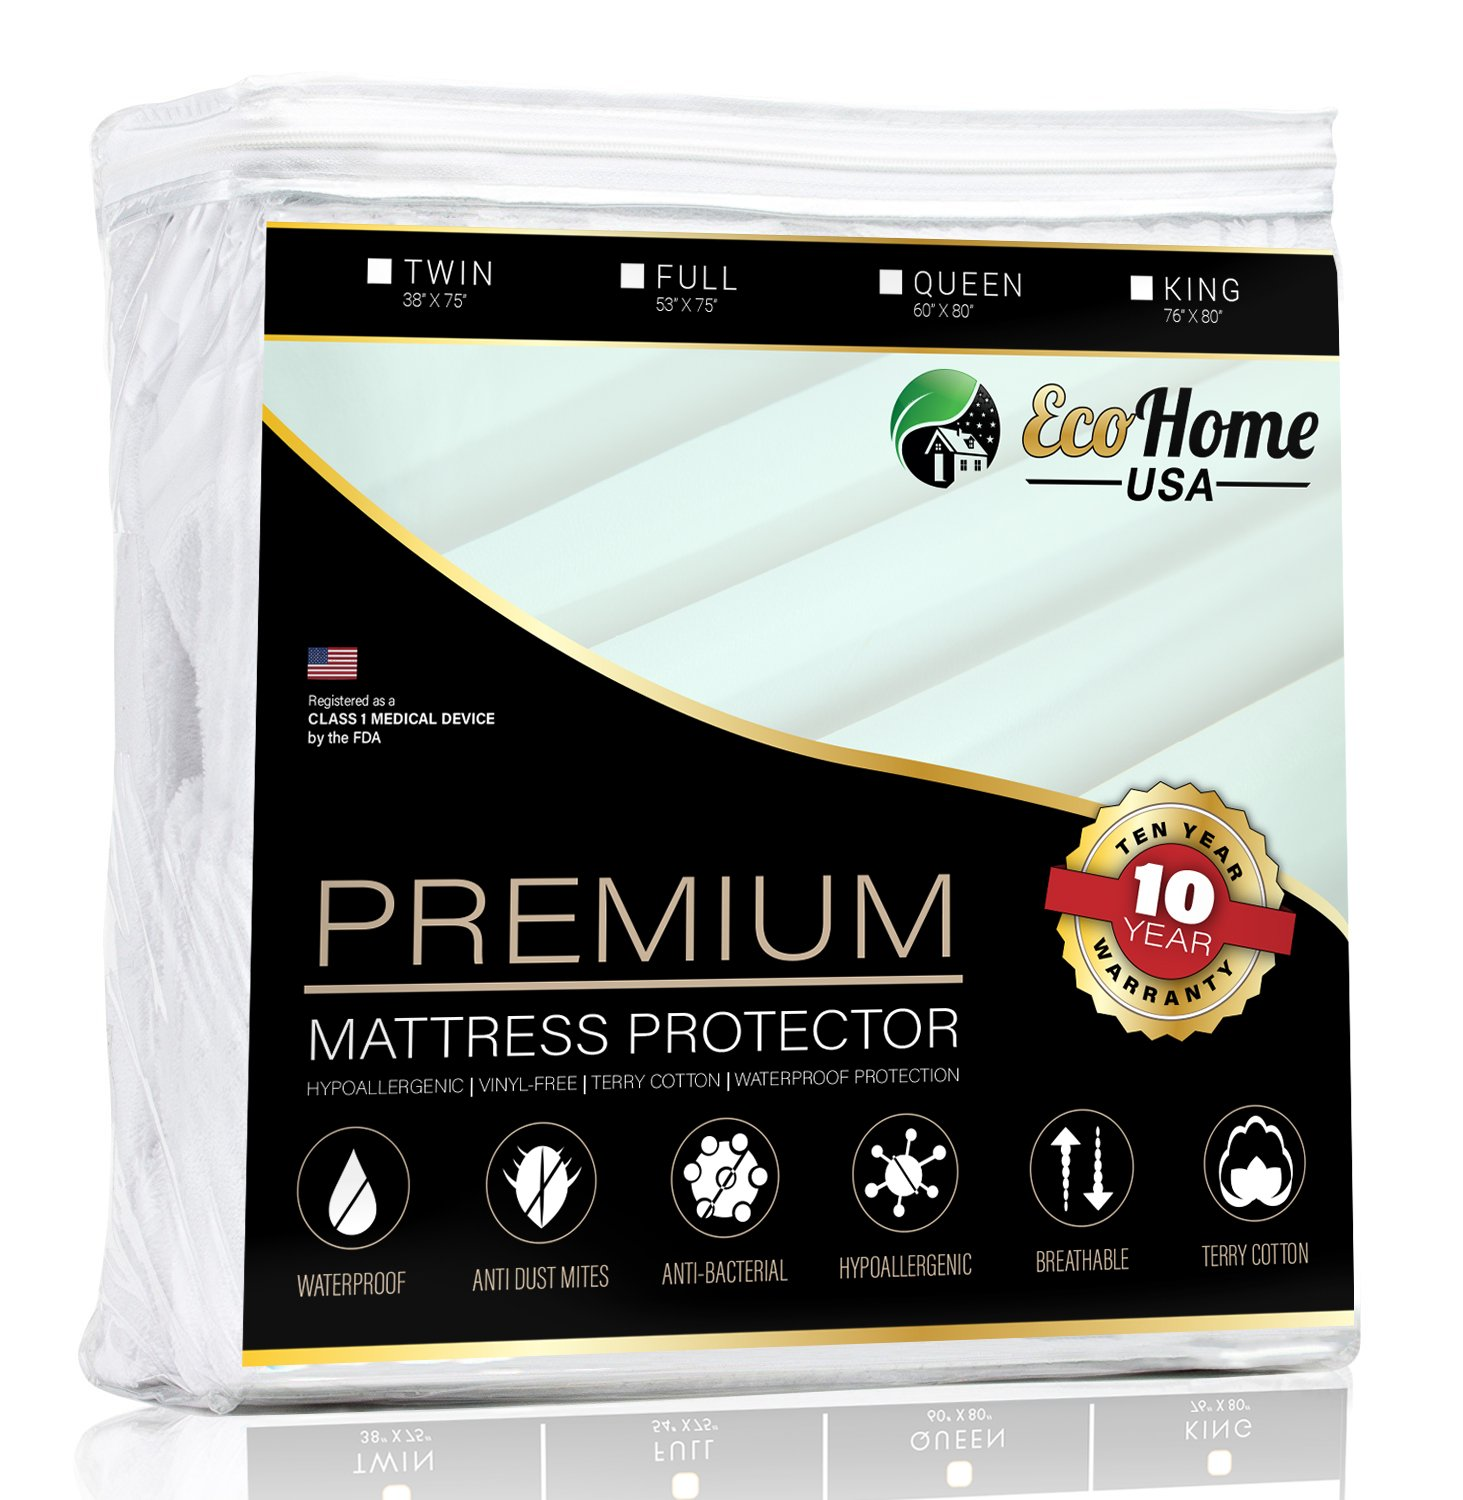 King Size Premium Mattress Pad Protector - Waterproof & Hypoallergenic Cover - Vinyl Free, Terry Cotton Topper - By CalmniteTM